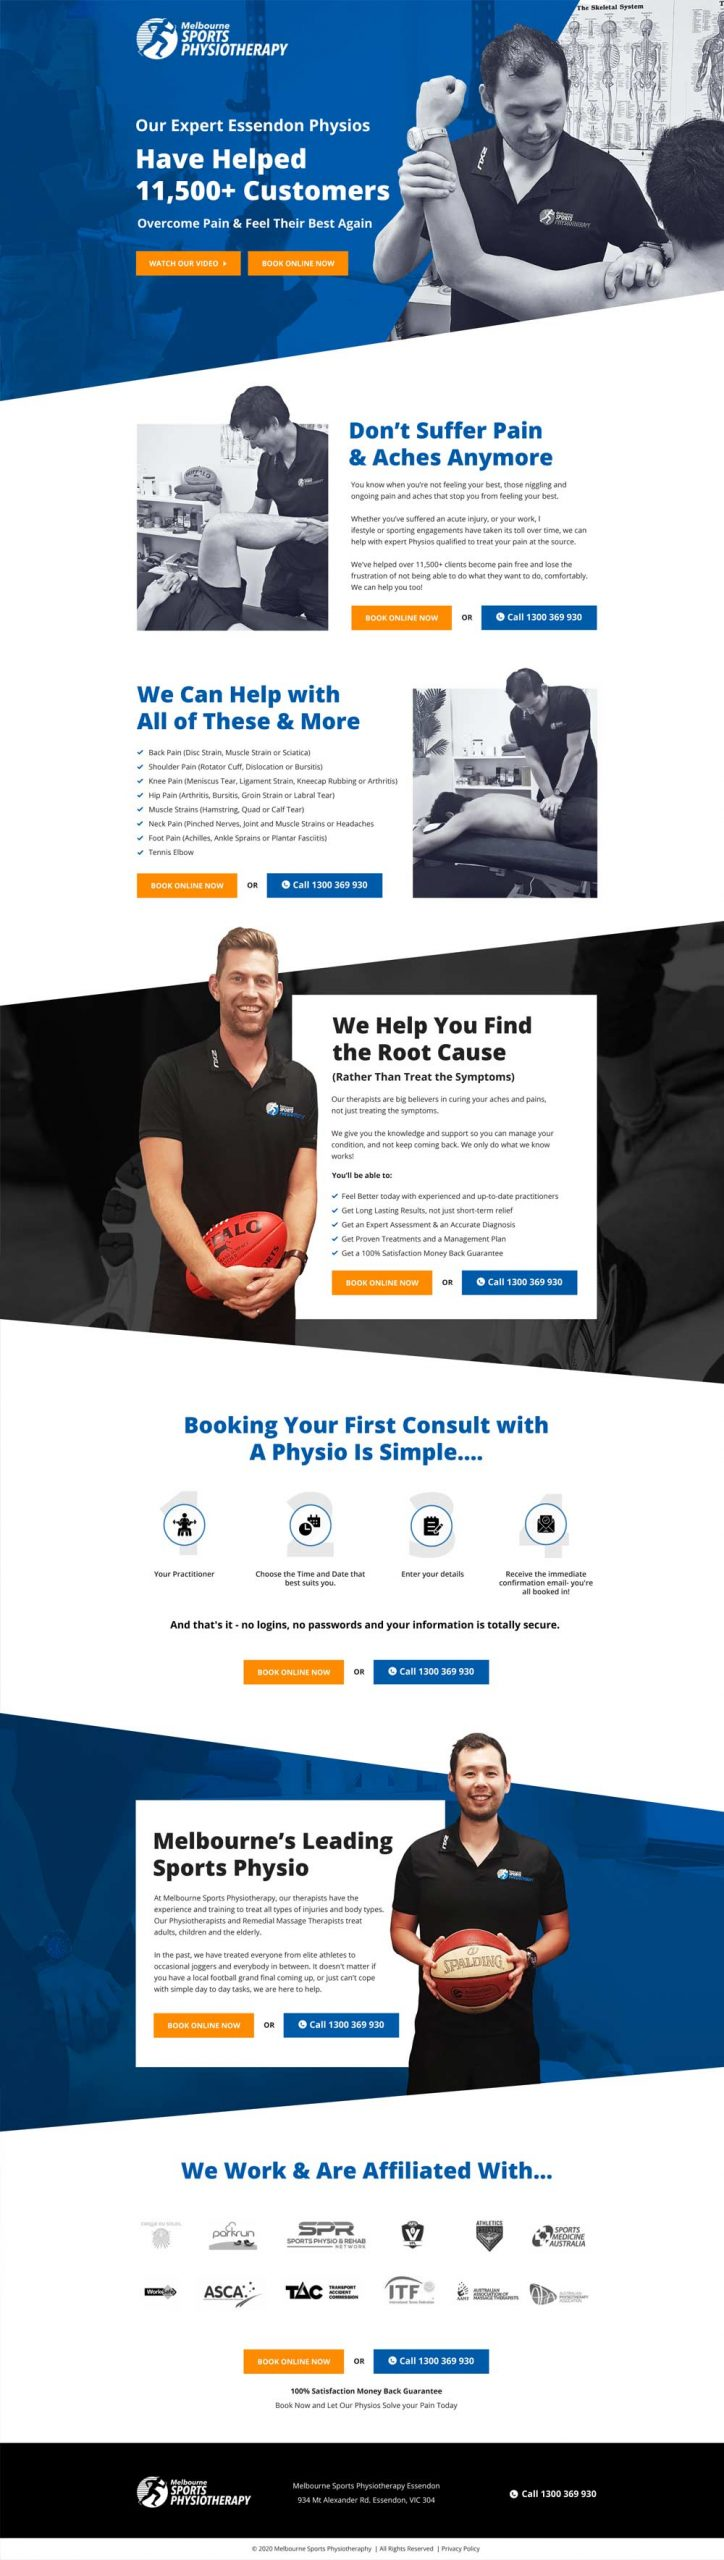 melbourne-sports-physio